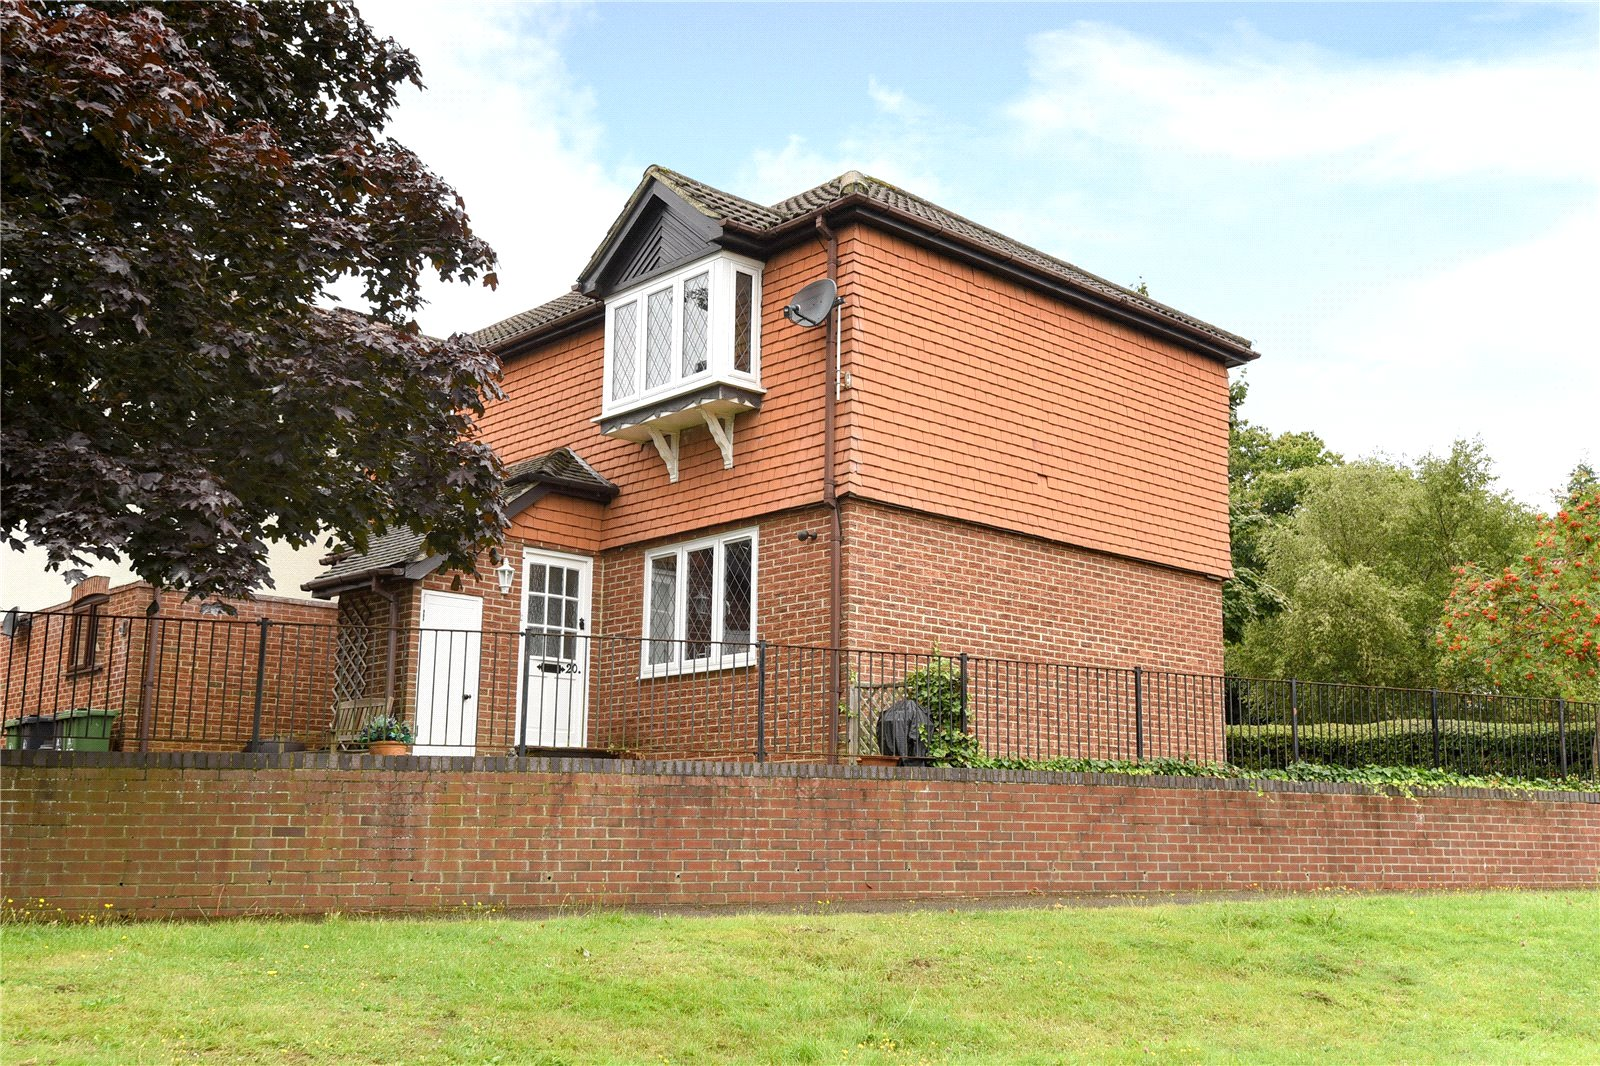 2 Bedrooms Maisonette Flat for sale in Shepherds Chase, Bagshot, Surrey, GU19